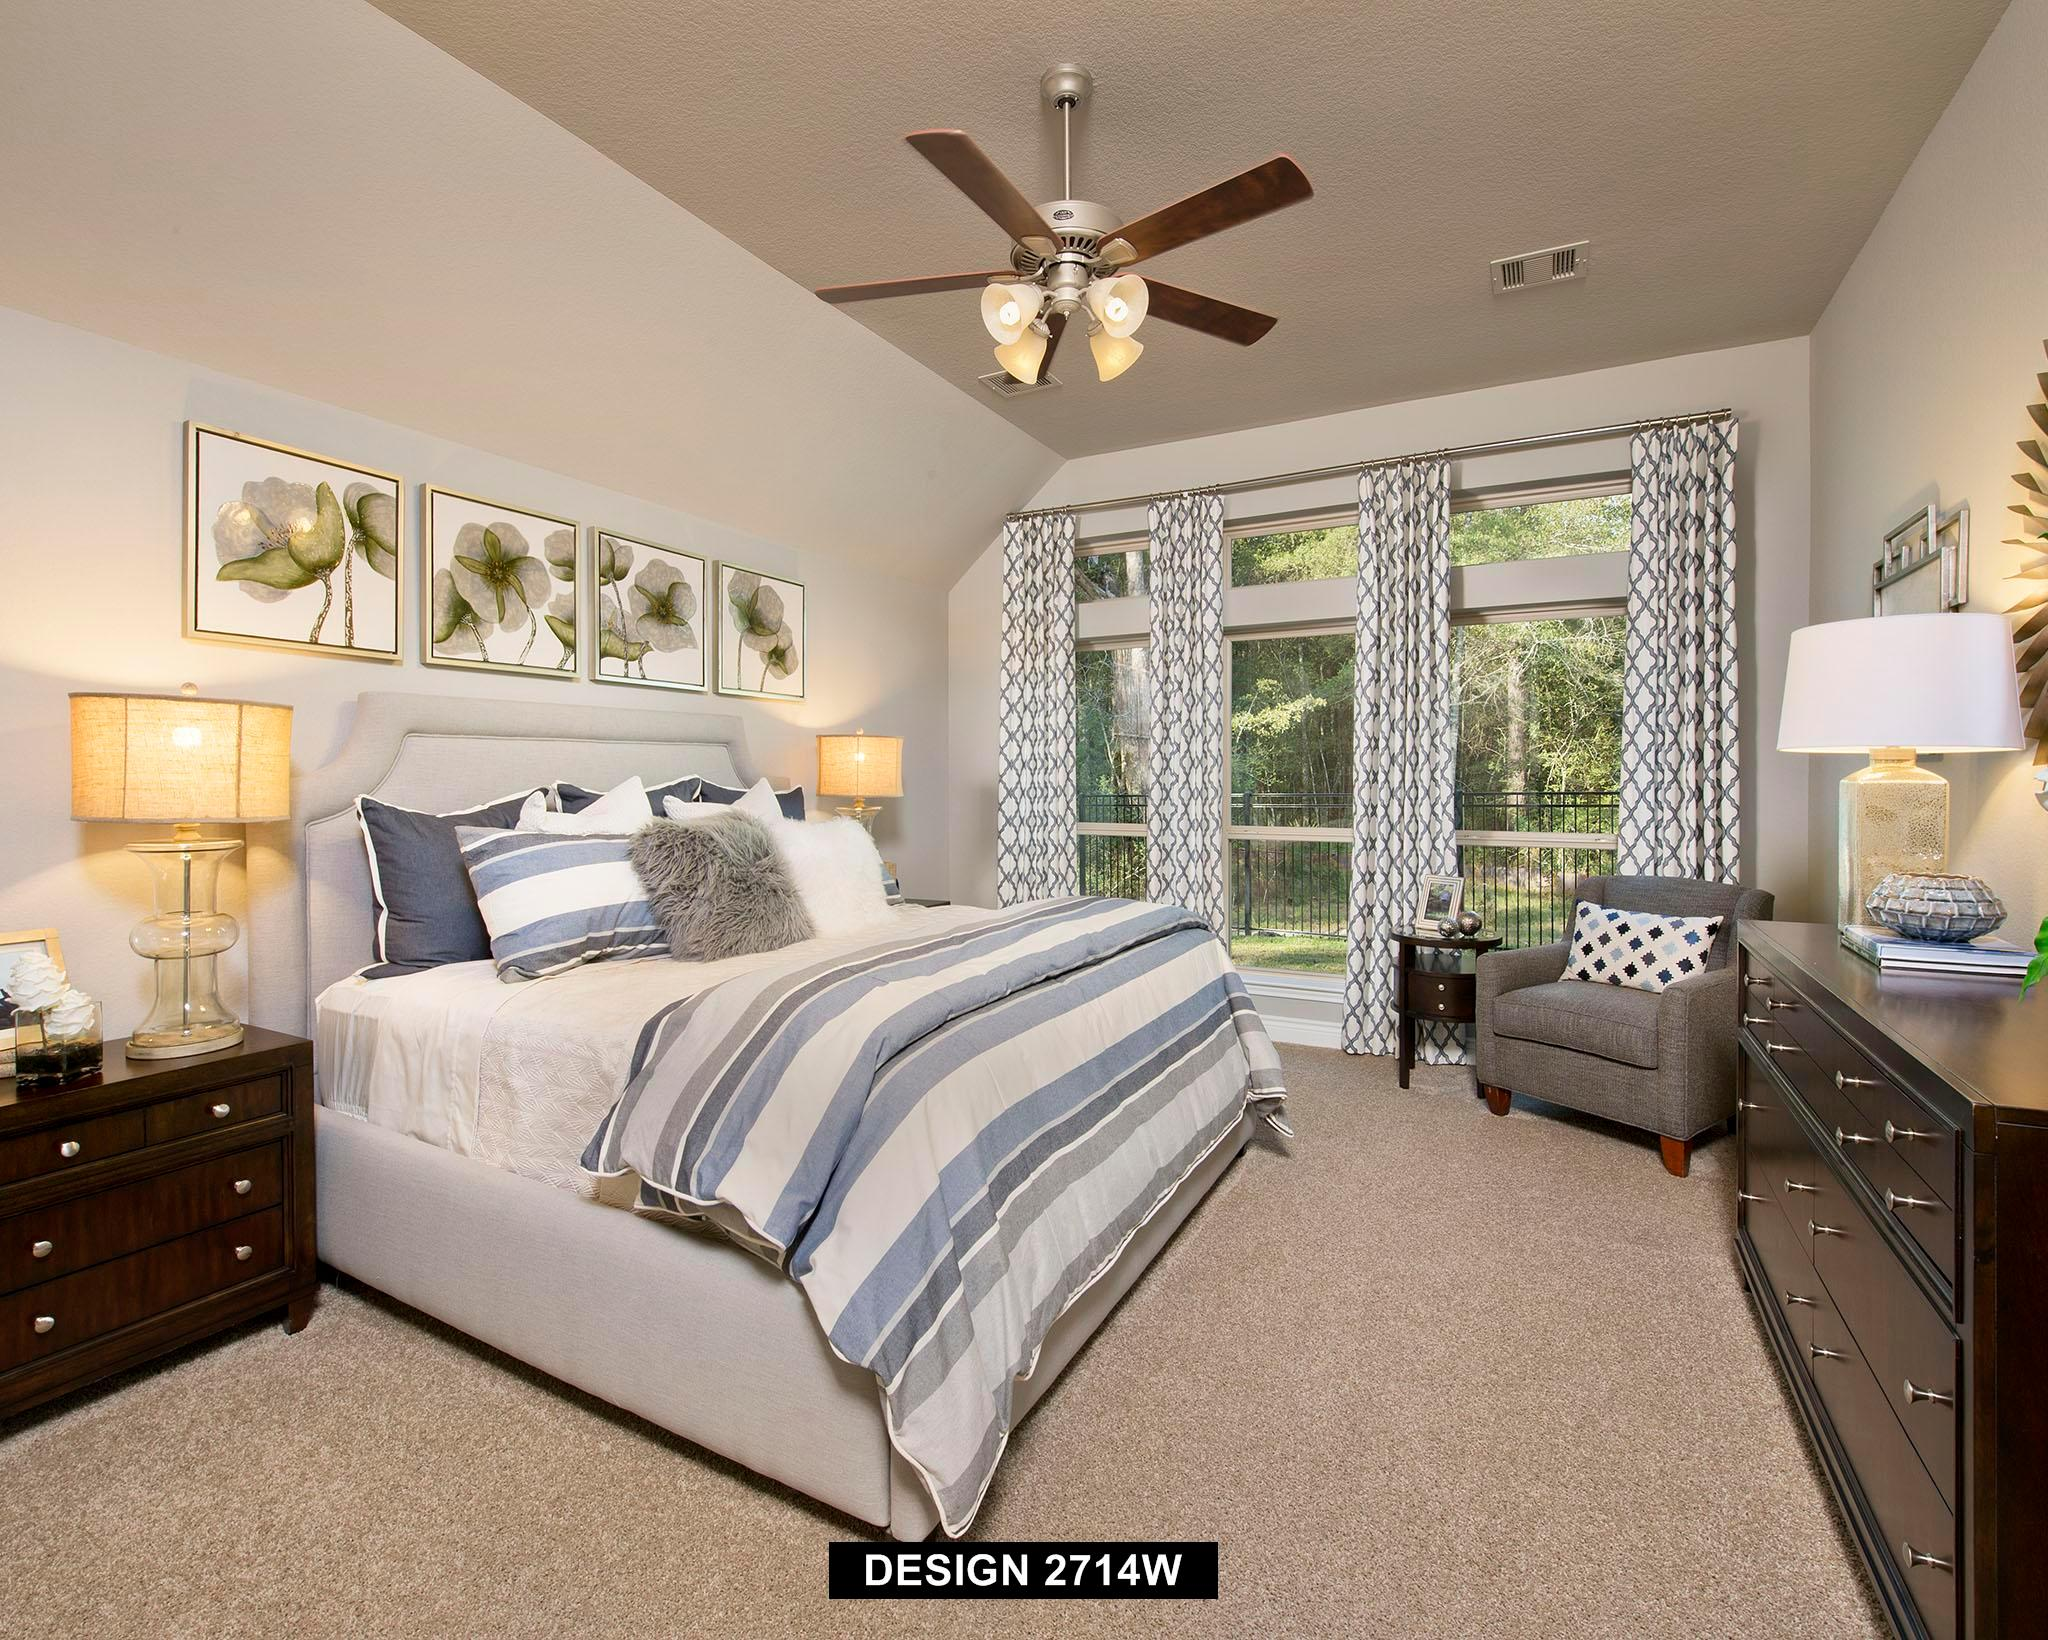 Bedroom featured in the 2714W By Perry Homes in Houston, TX